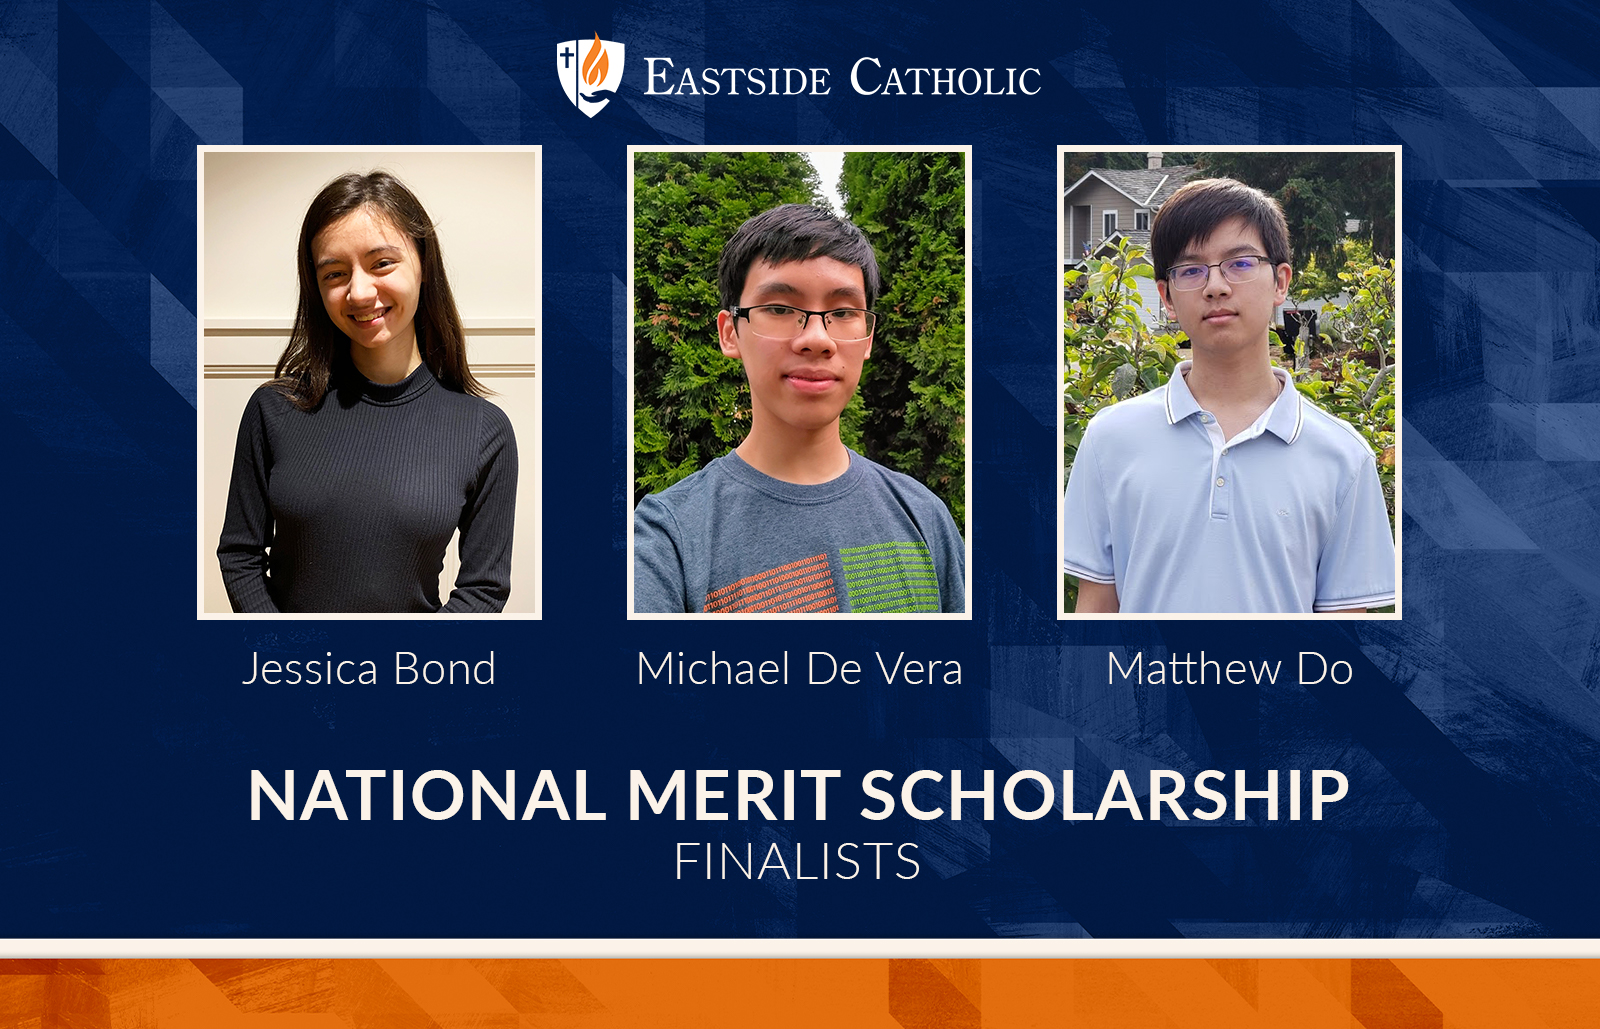 Class of 2021 National Merit Scholarship Finalists